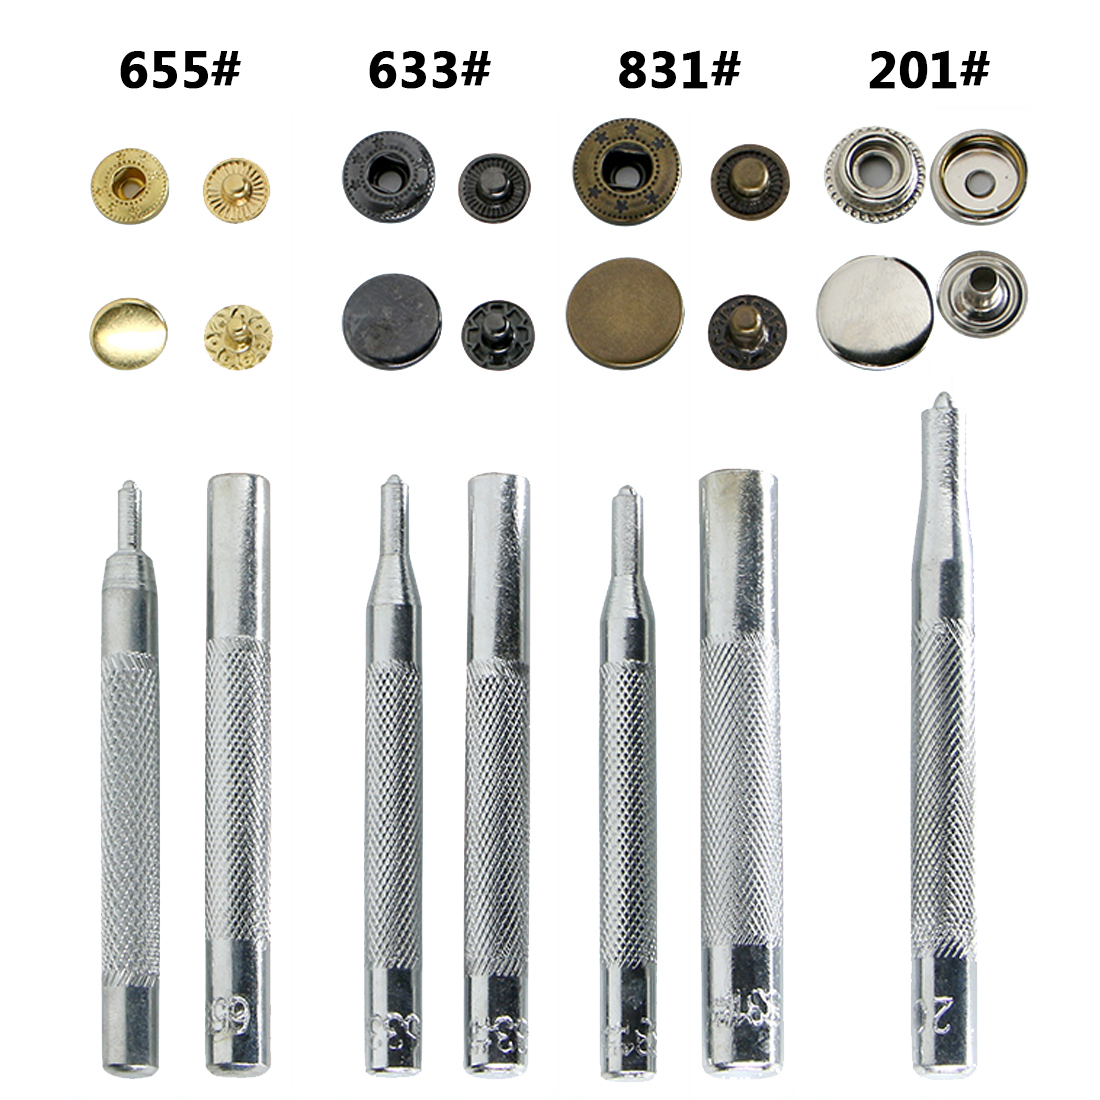 US $7 27 18% OFF|Useful 11pcs DIY Leather Craft Tool Die Punch Snap  Fasteners Press Studs Rivet Setter Base Fixing Kit Set for DIY  Leathercraft-in